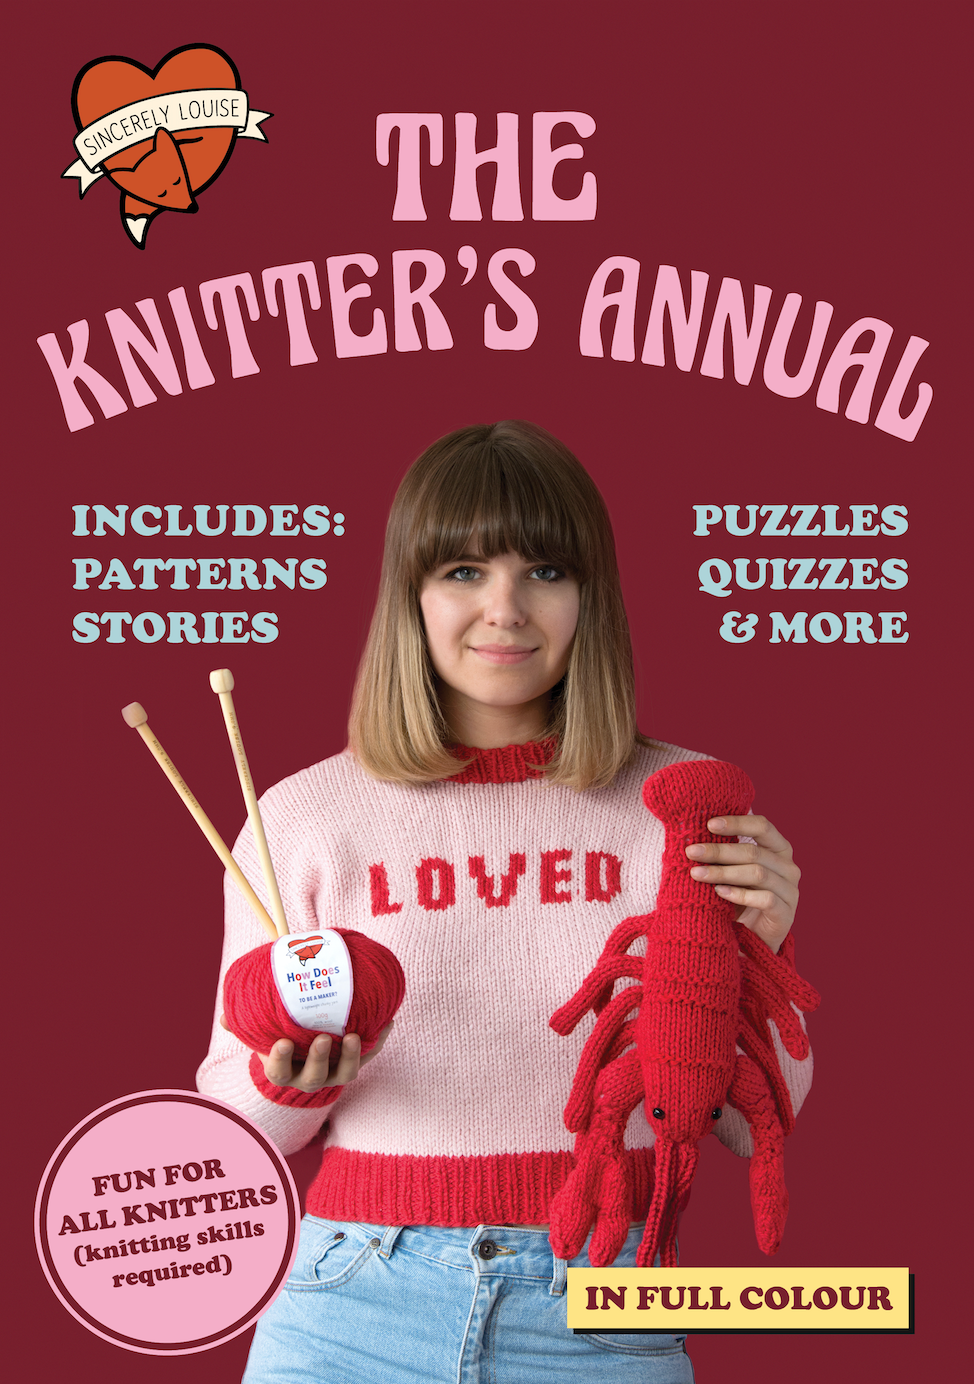 The Knitter's Annual